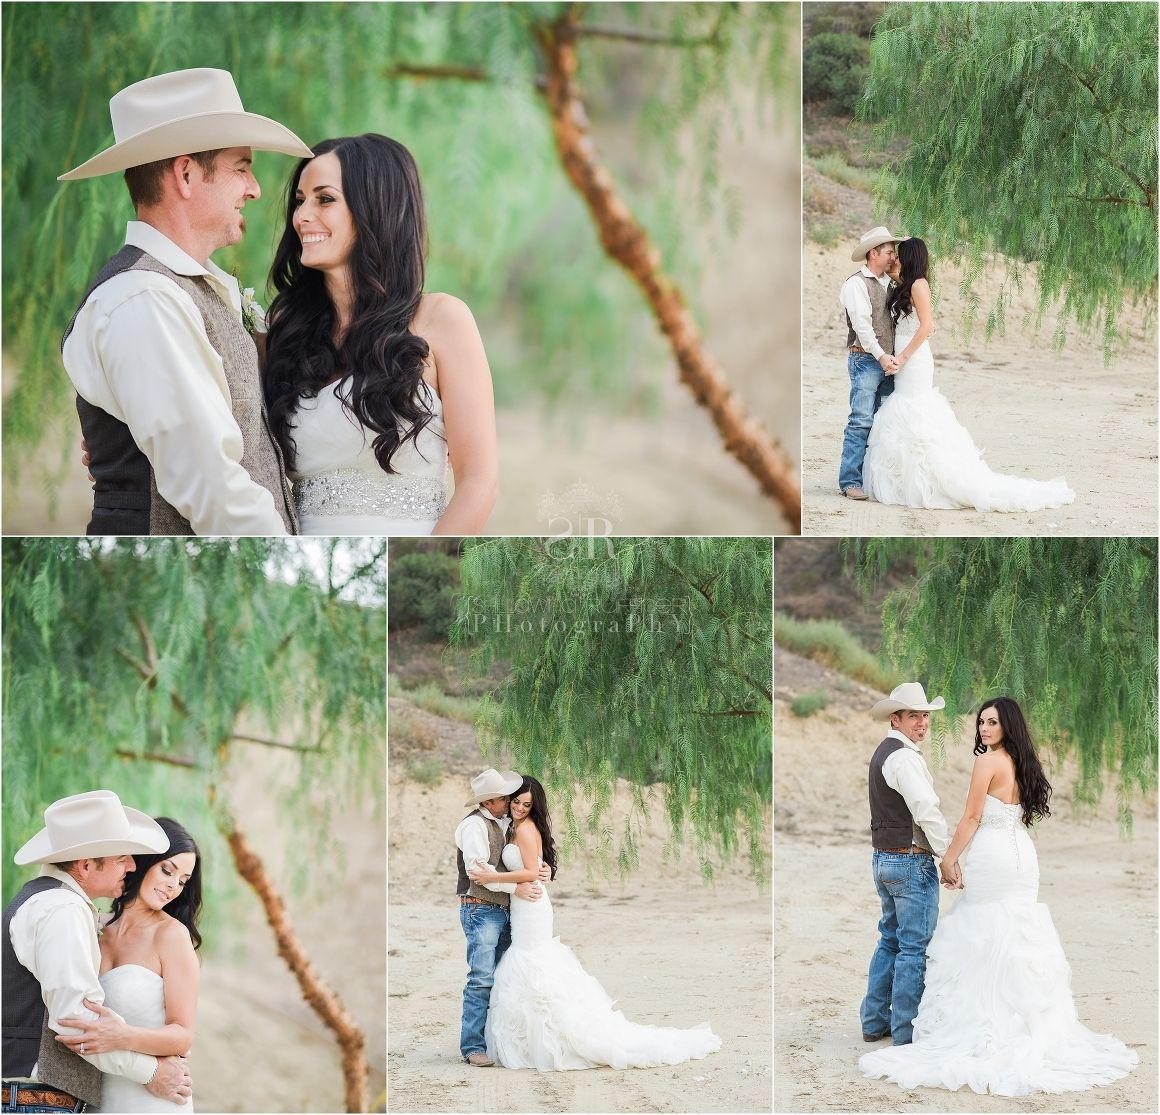 evansville-indiana-wedding-photography-country-western-cowboy-ranch-wedding0025